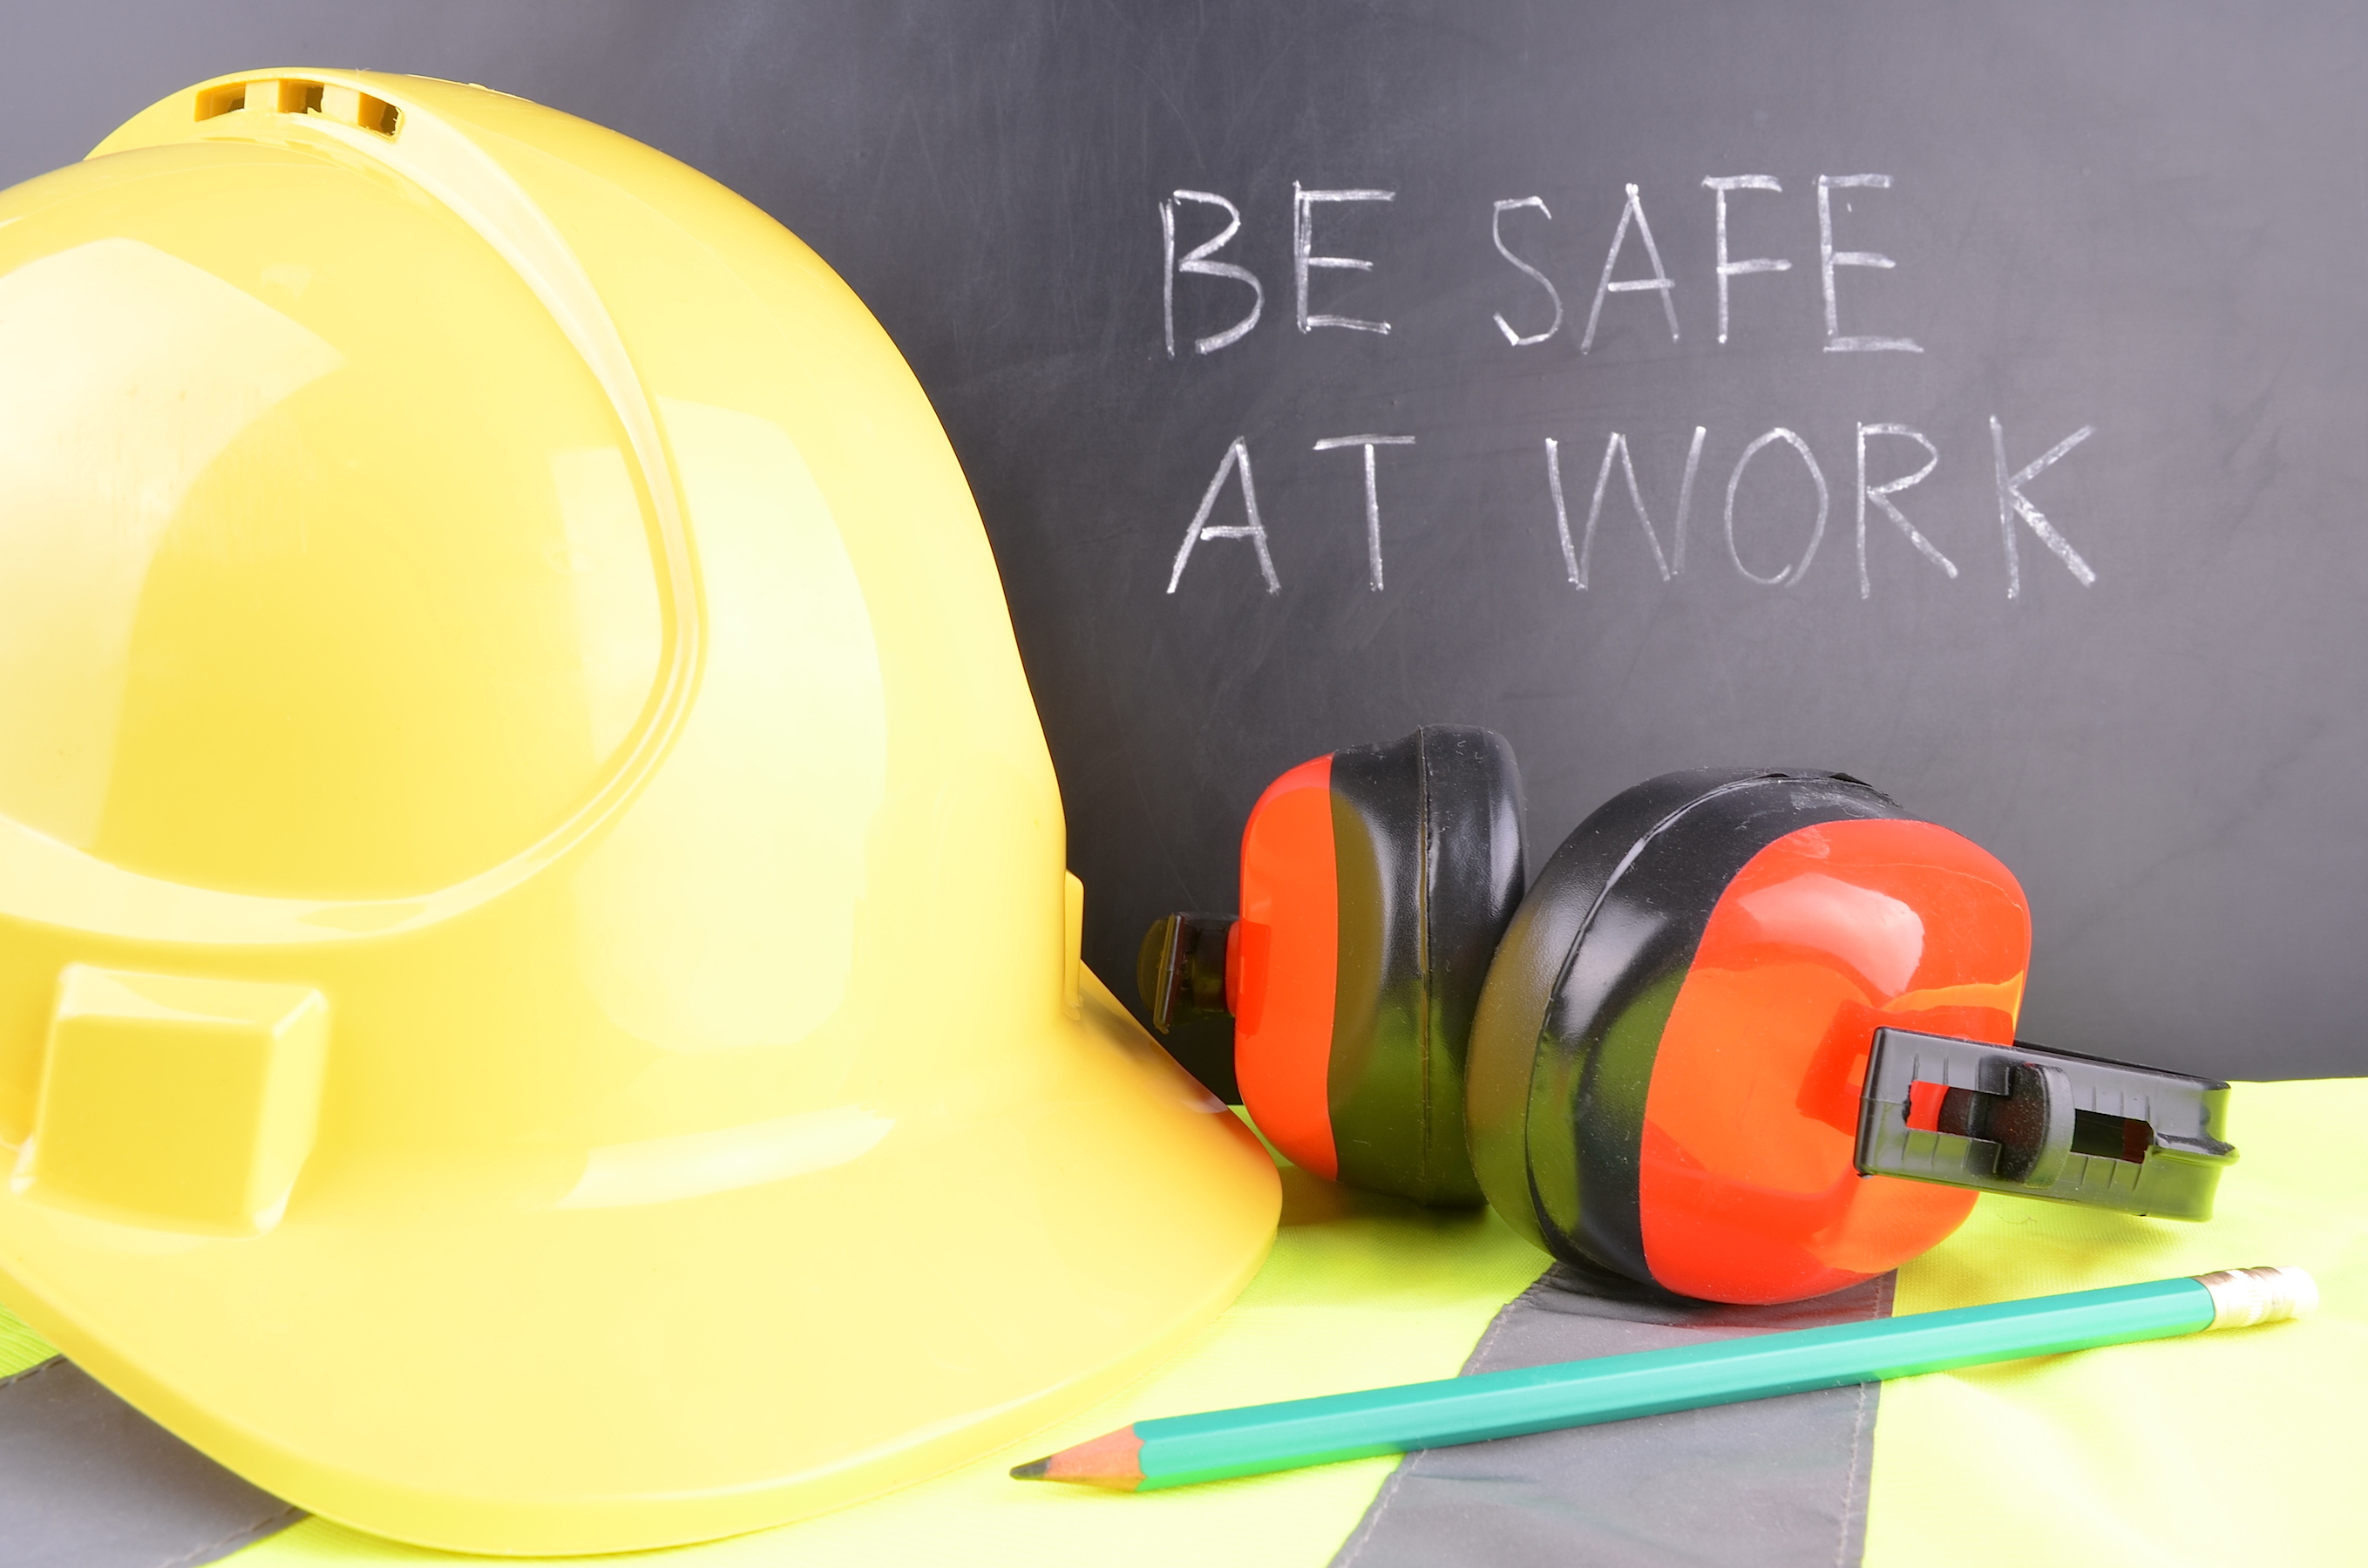 Watch Your Step! – Workplace Safety Tips